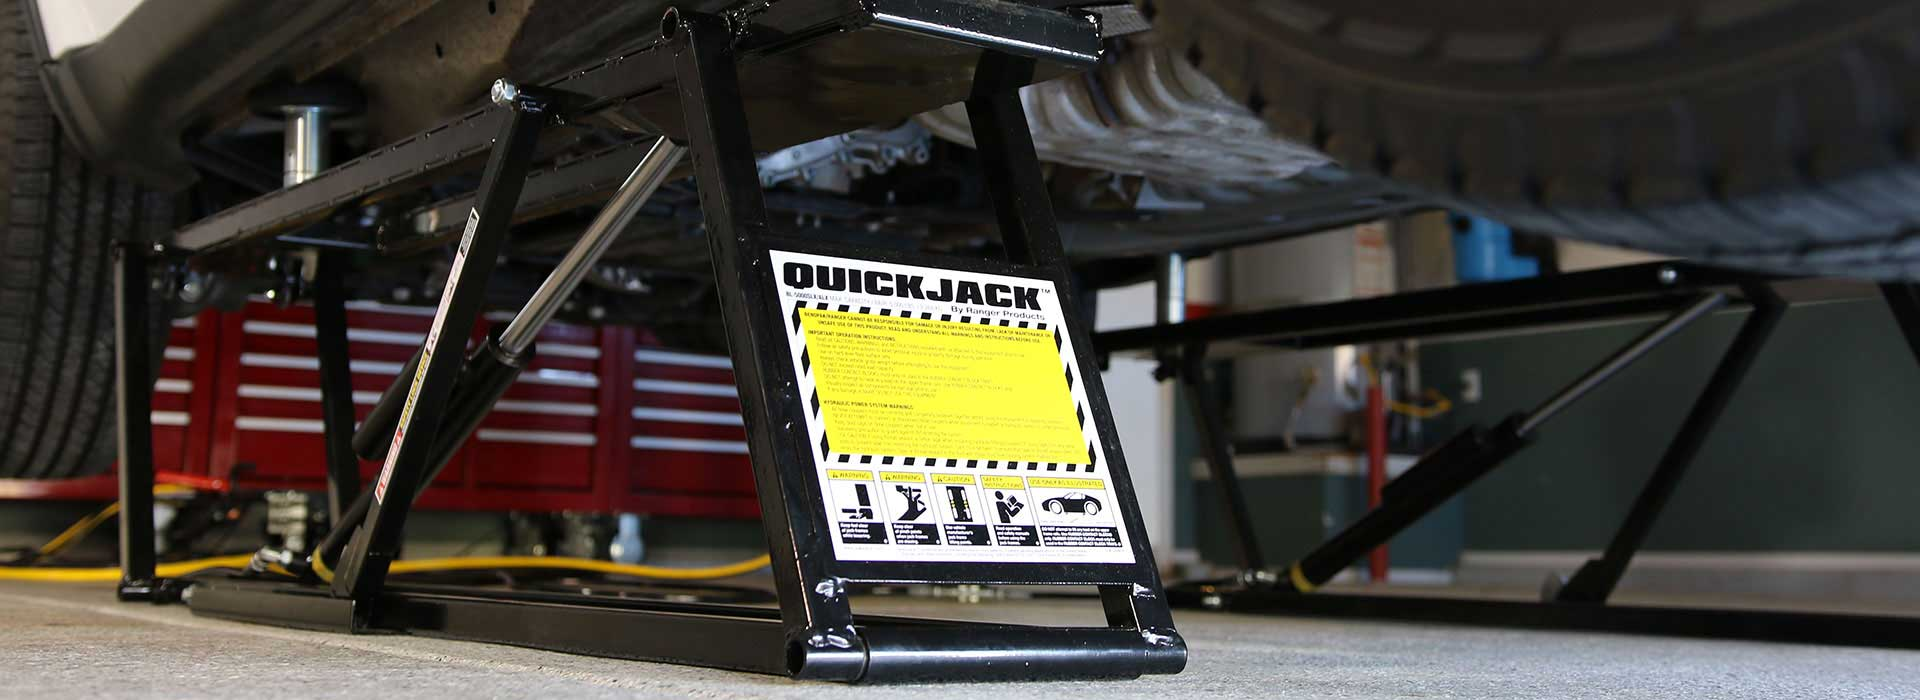 Domestic Garage Car Lift Best Portable Car Hoist For Garage Or Shop Quickjack Australia